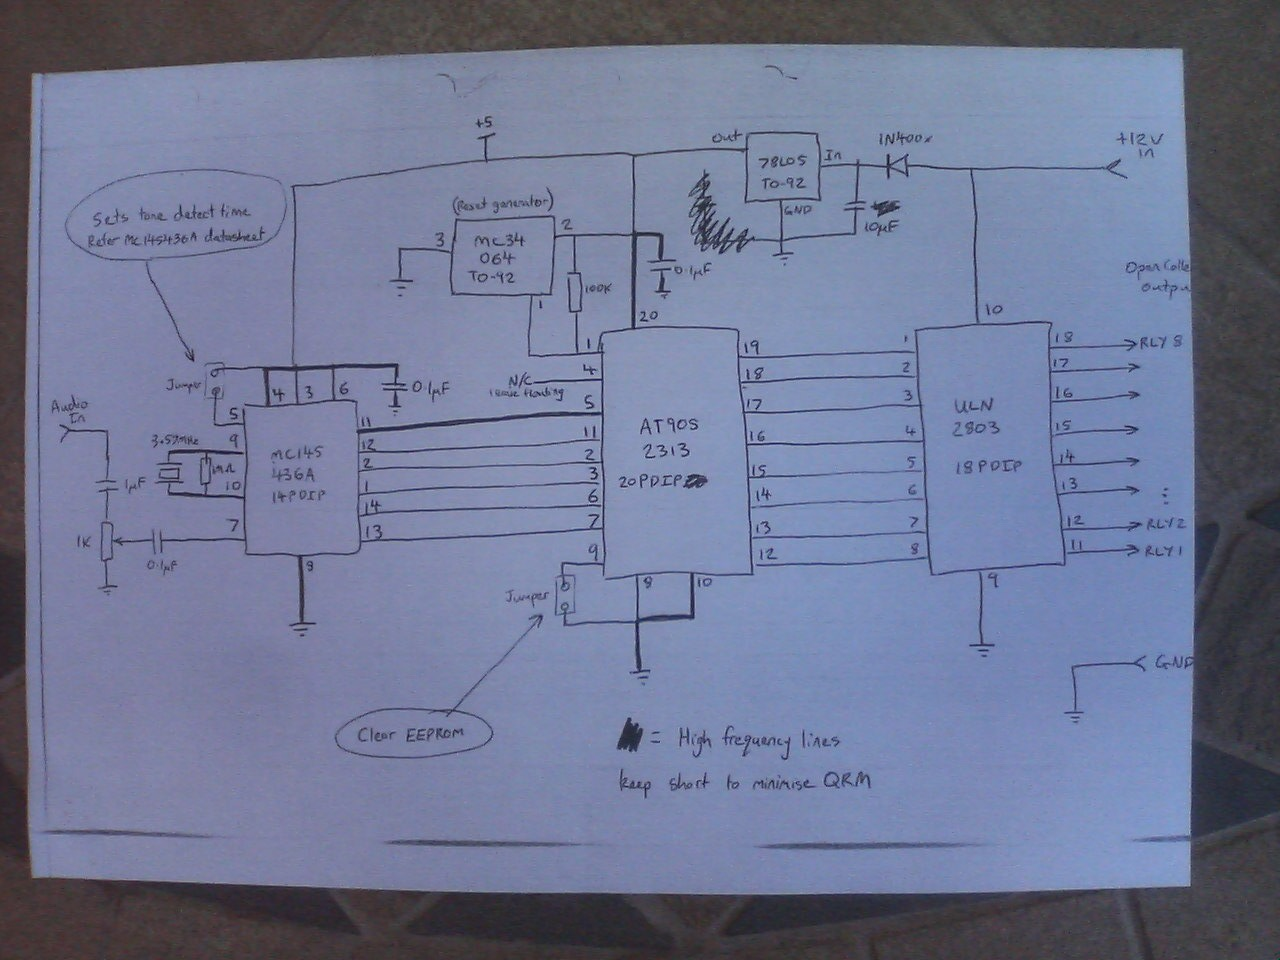 DTMF%2520relay%2520controller%2520 %2520schematic results page 23, about '88 108 mhz fm receiver' searching carrier clo board wiring diagram at gsmx.co